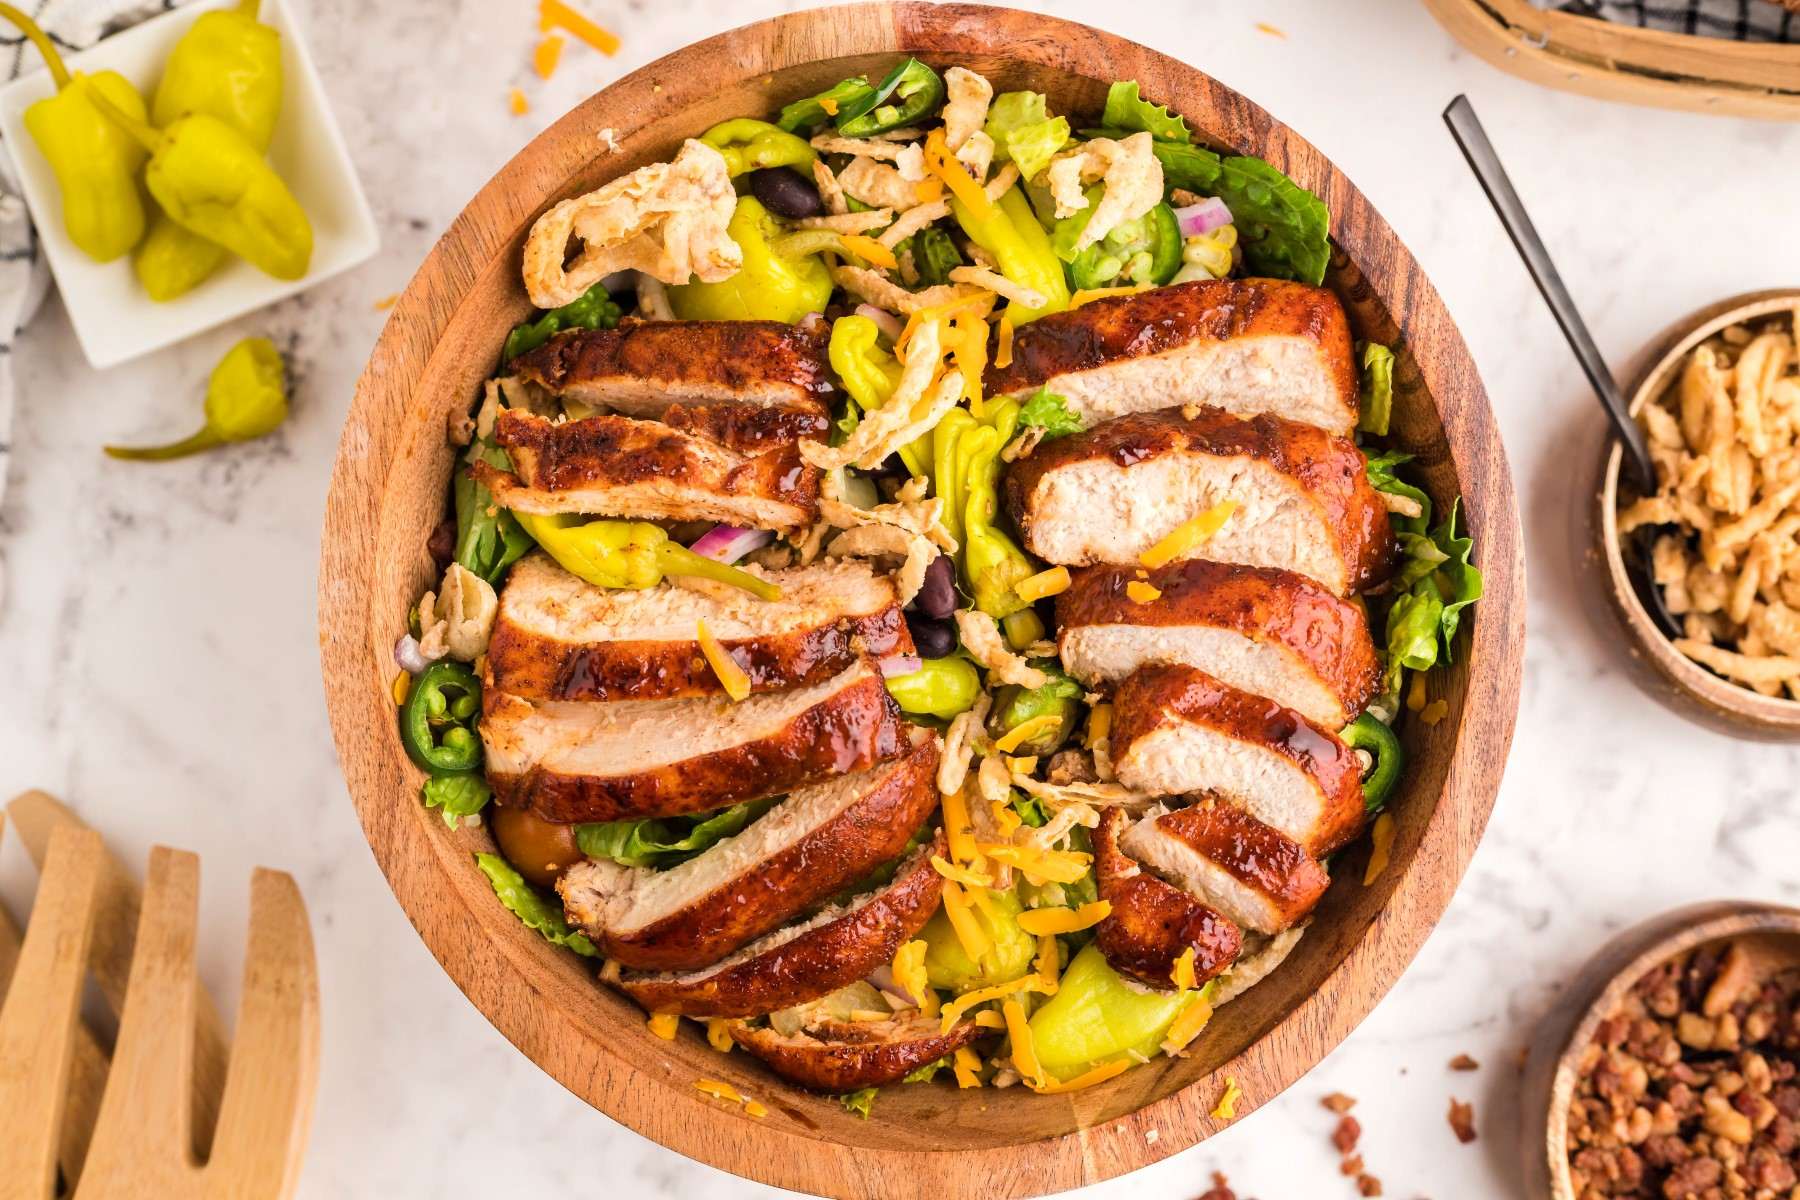 wooden salad bowl filled with grilled chicken salad with ingredients in small bowls around the large salad bowl.